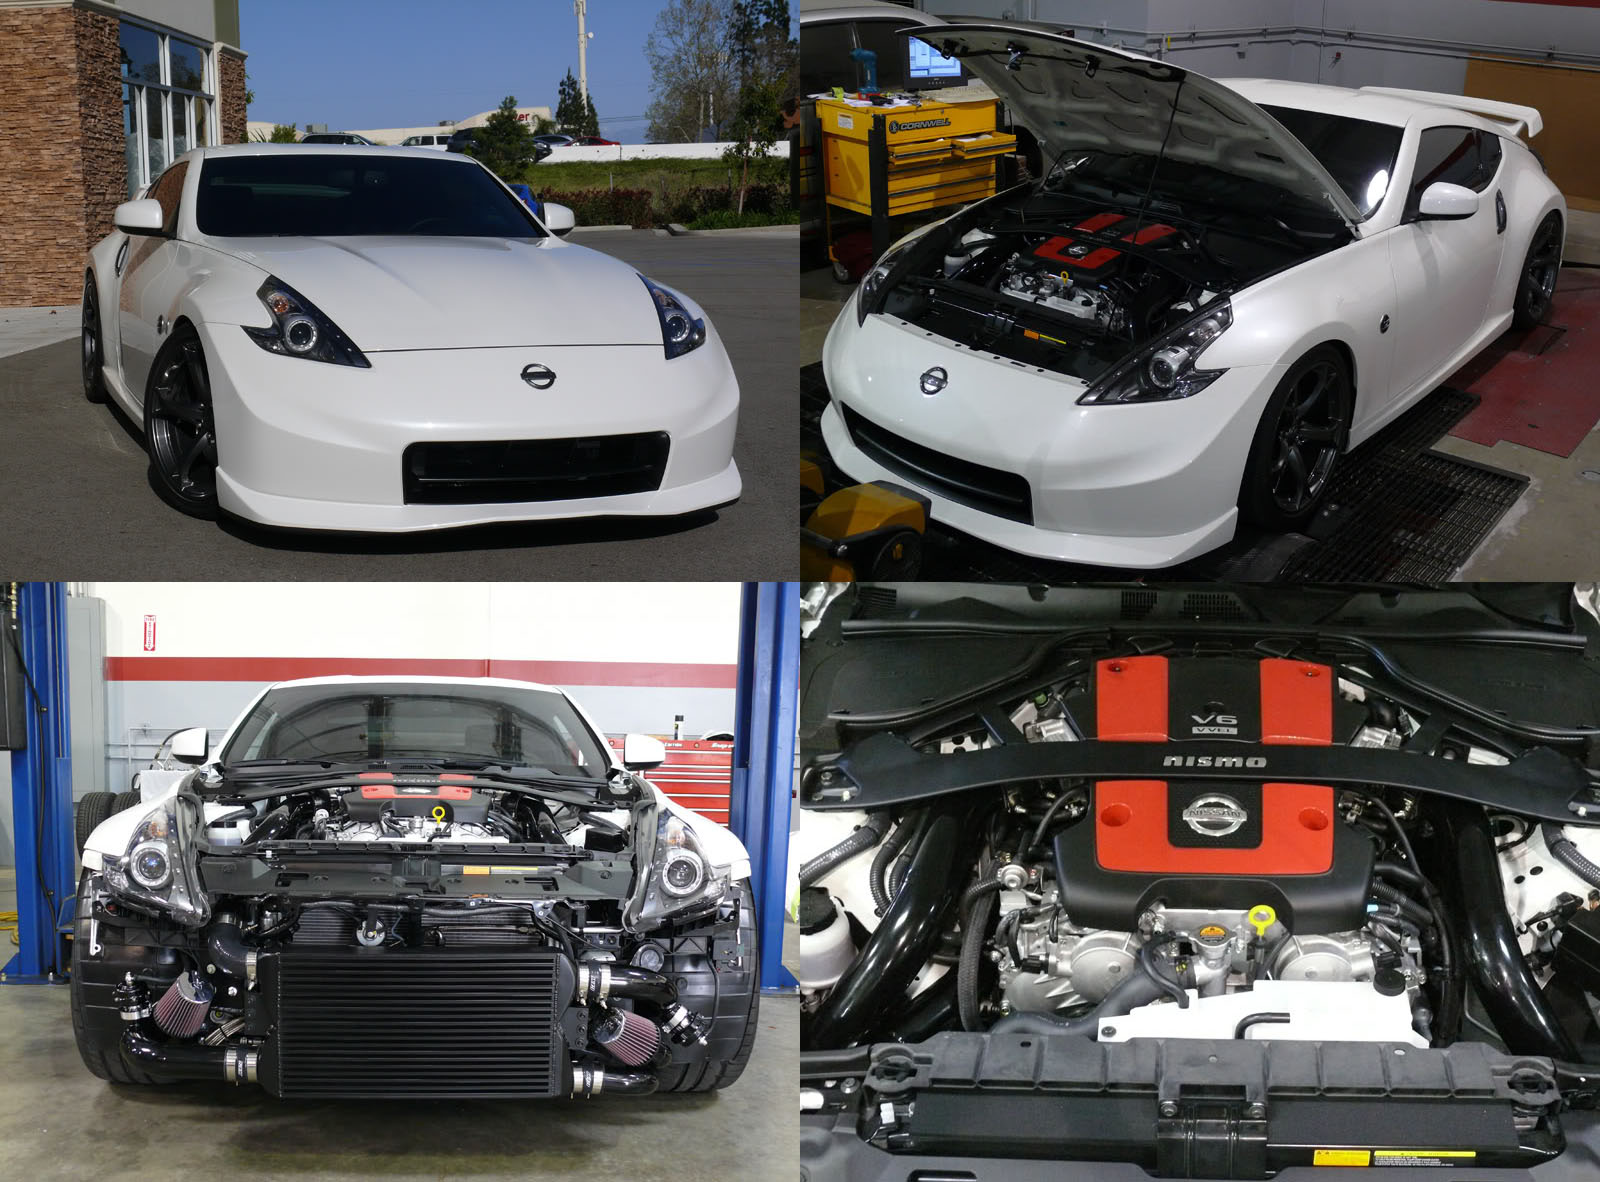 2010 nissan 370z nismo gtm twin turbo pictures mods upgrades wallpaper. Black Bedroom Furniture Sets. Home Design Ideas